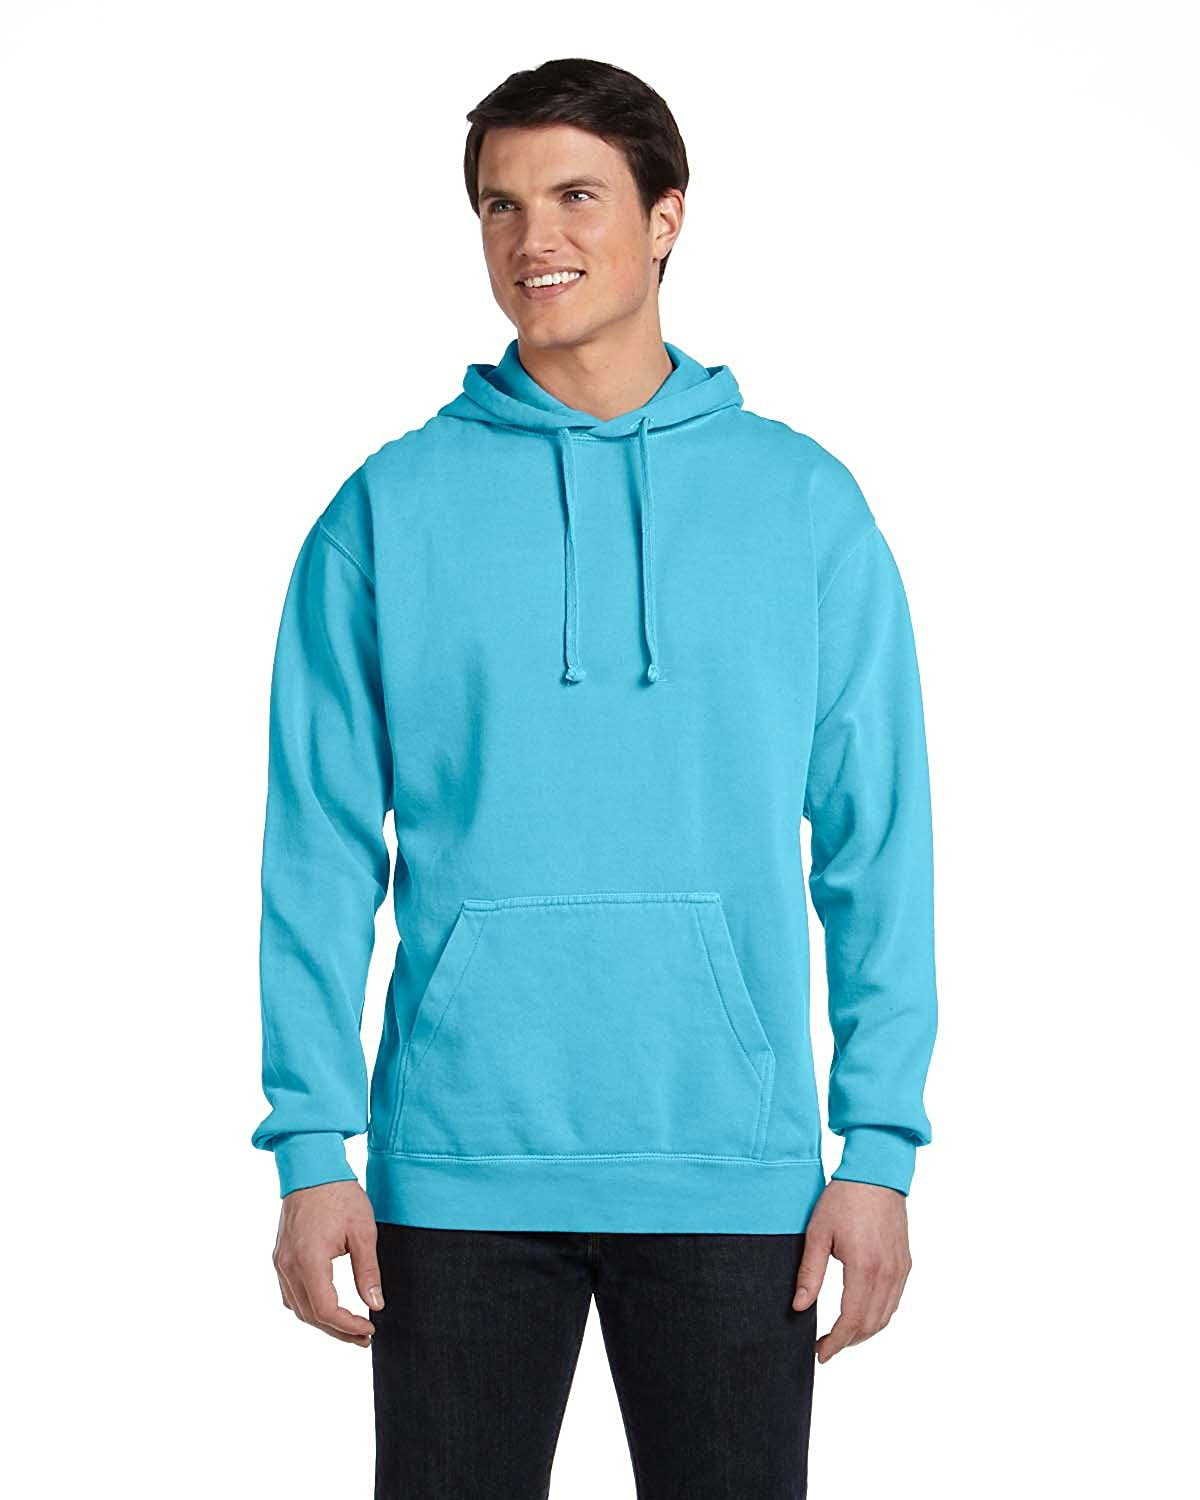 1567 Lagoon Blue Comfort Colors 9.5 oz Garment-Dyed Pullover Hoodie